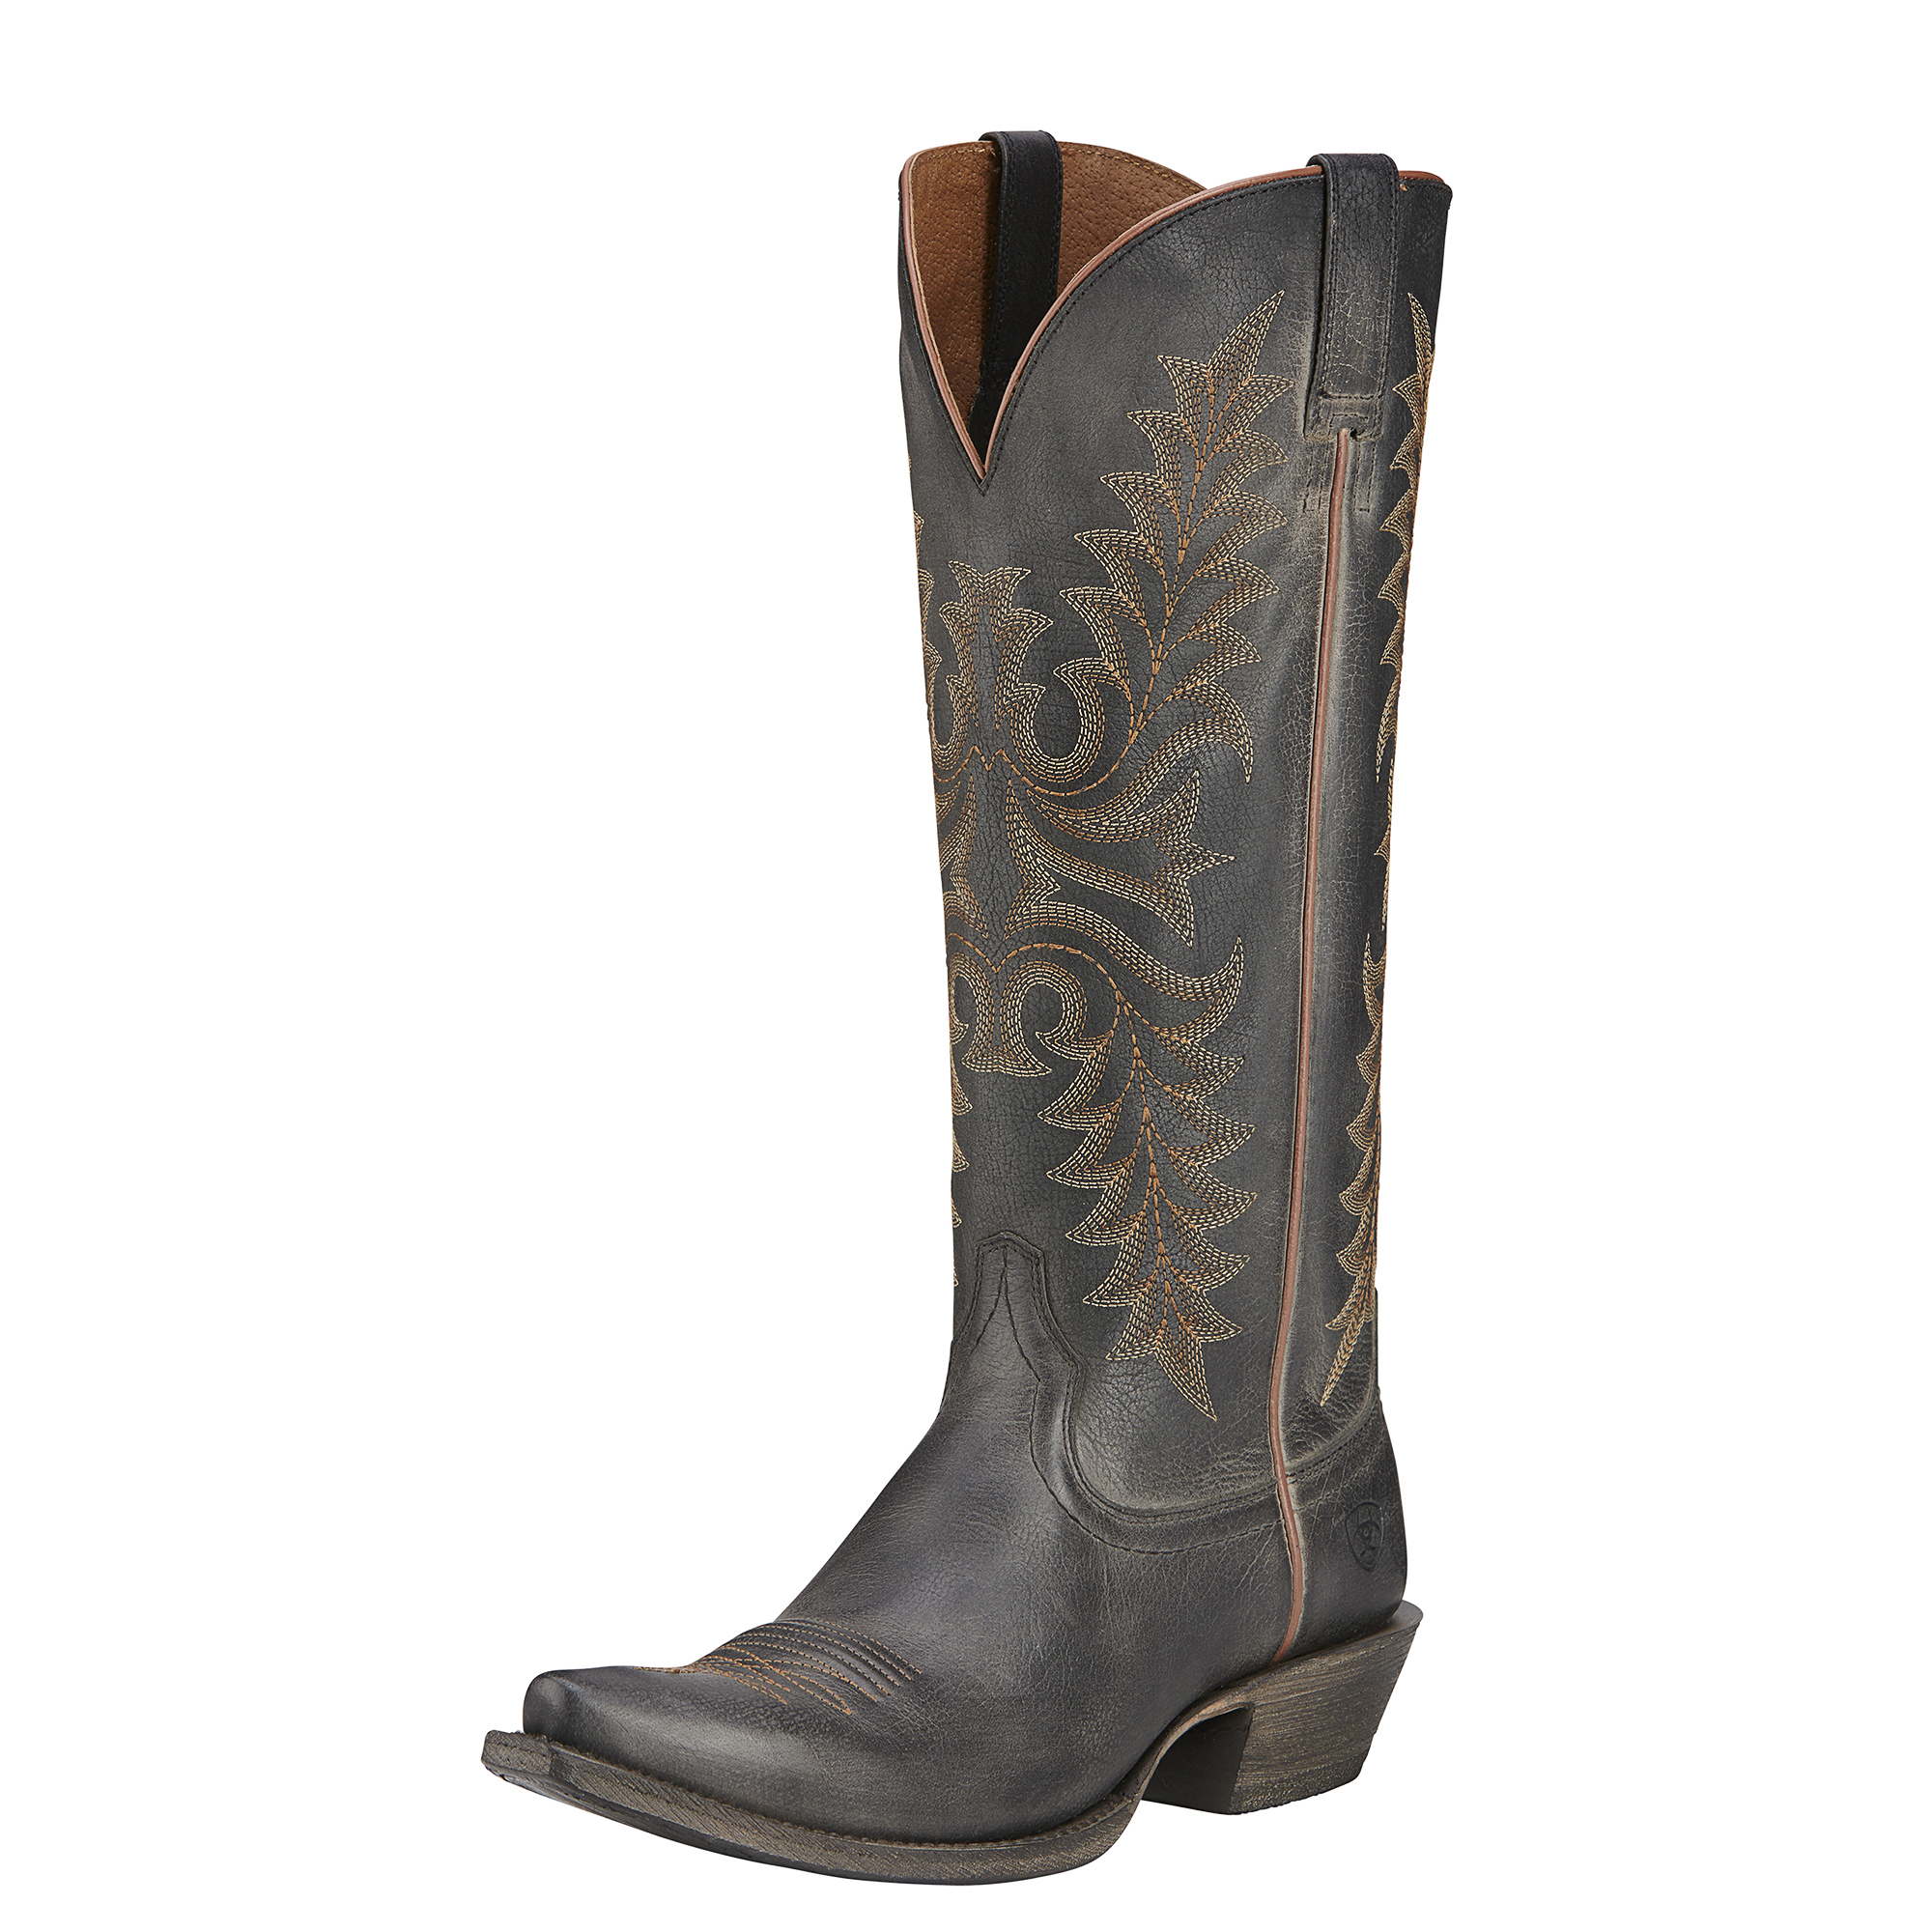 Shop for Sale Ariat Men's Western footwear, apparel, and more. Shop Sale and discounted styles here on antminekraft85.tk Free Standard Shipping On All Domestic Orders $99 or More Clearance's Men Western 25 Products Categories Rebar M4 Low Rise Workhorse Canvas Boot Cut Pant waist: 32